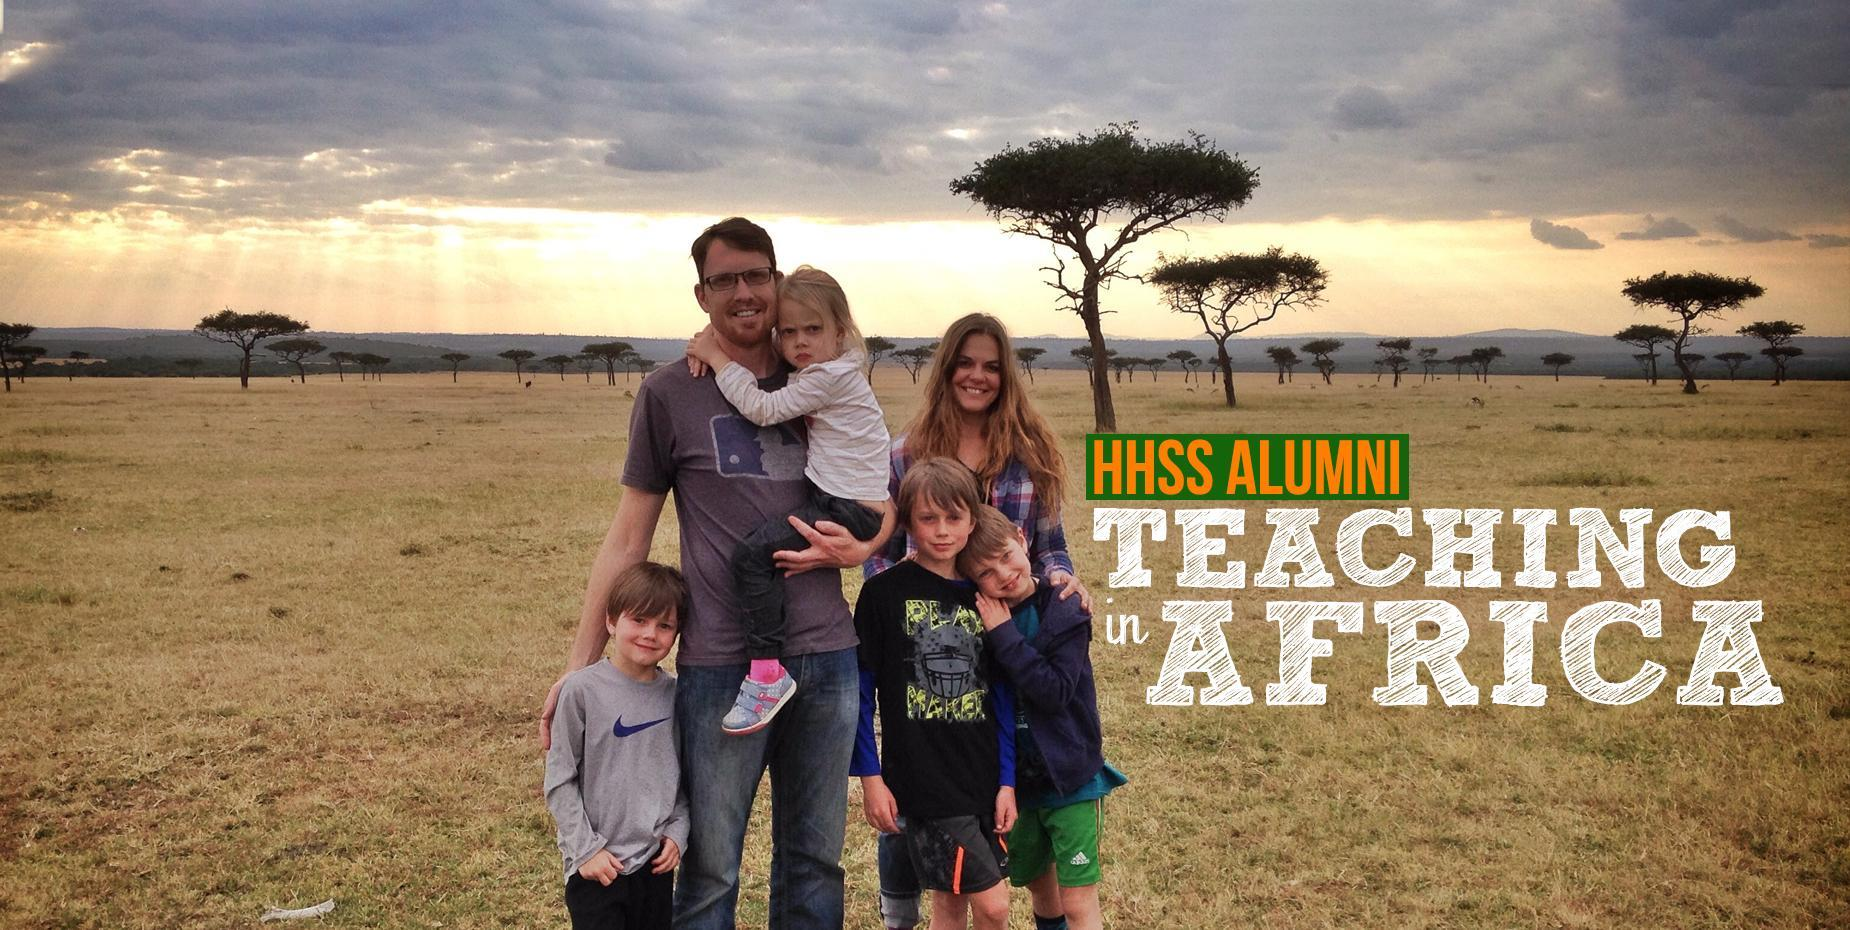 Photo of Hansen family in Africa with title that says HHSS alumni teaching in Africa